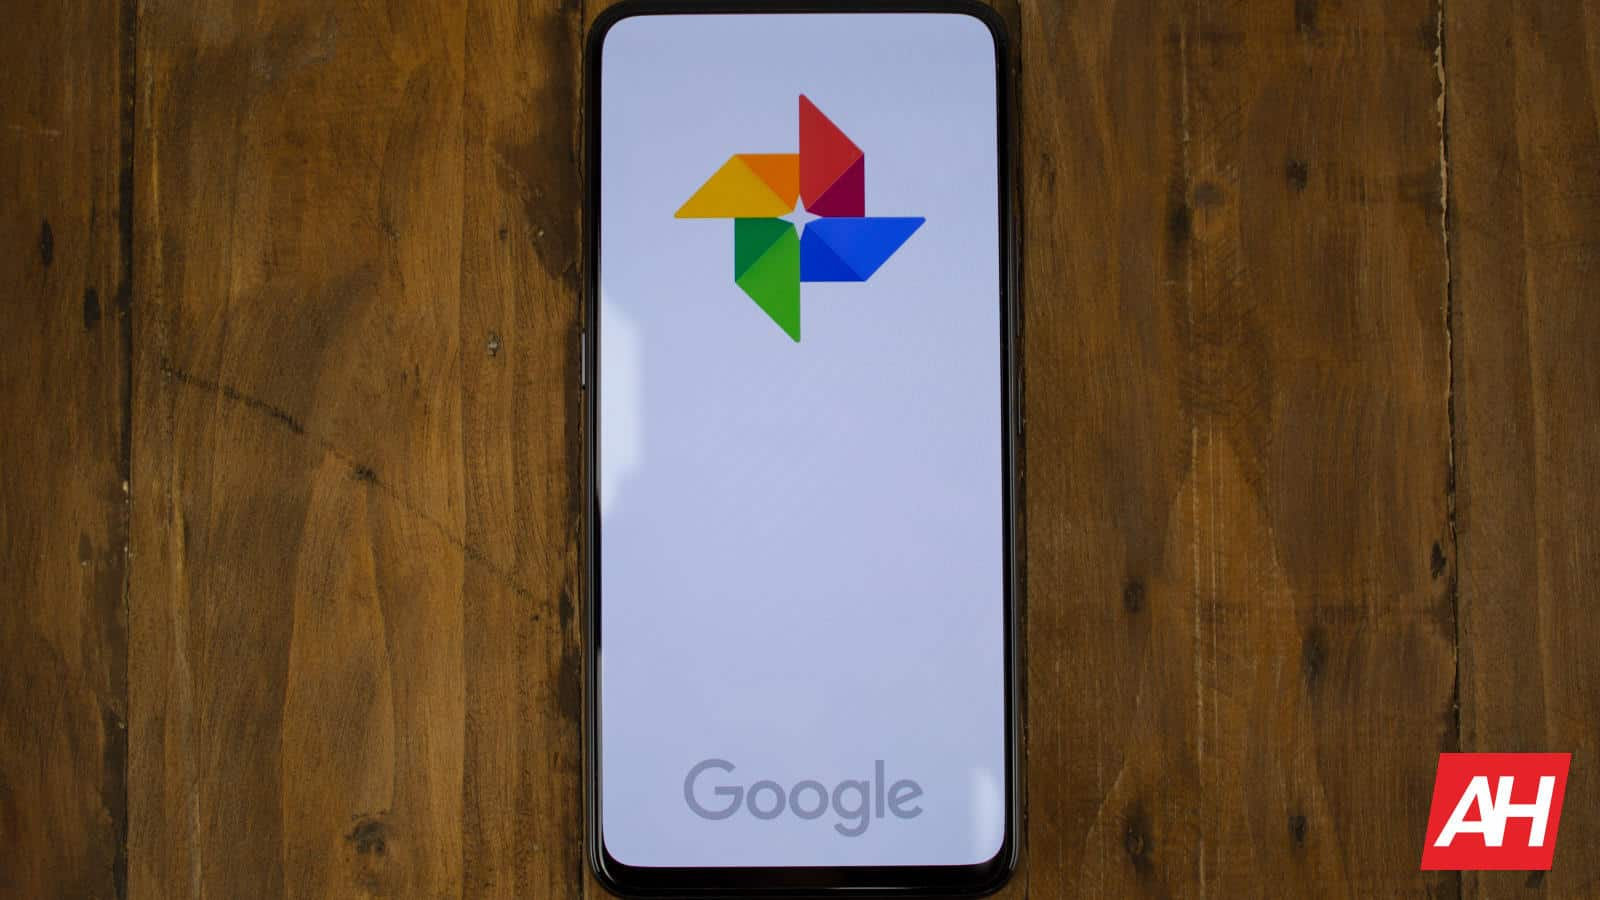 Top 10 Best Google Photos App Alternatives For Android – Updated April 2021